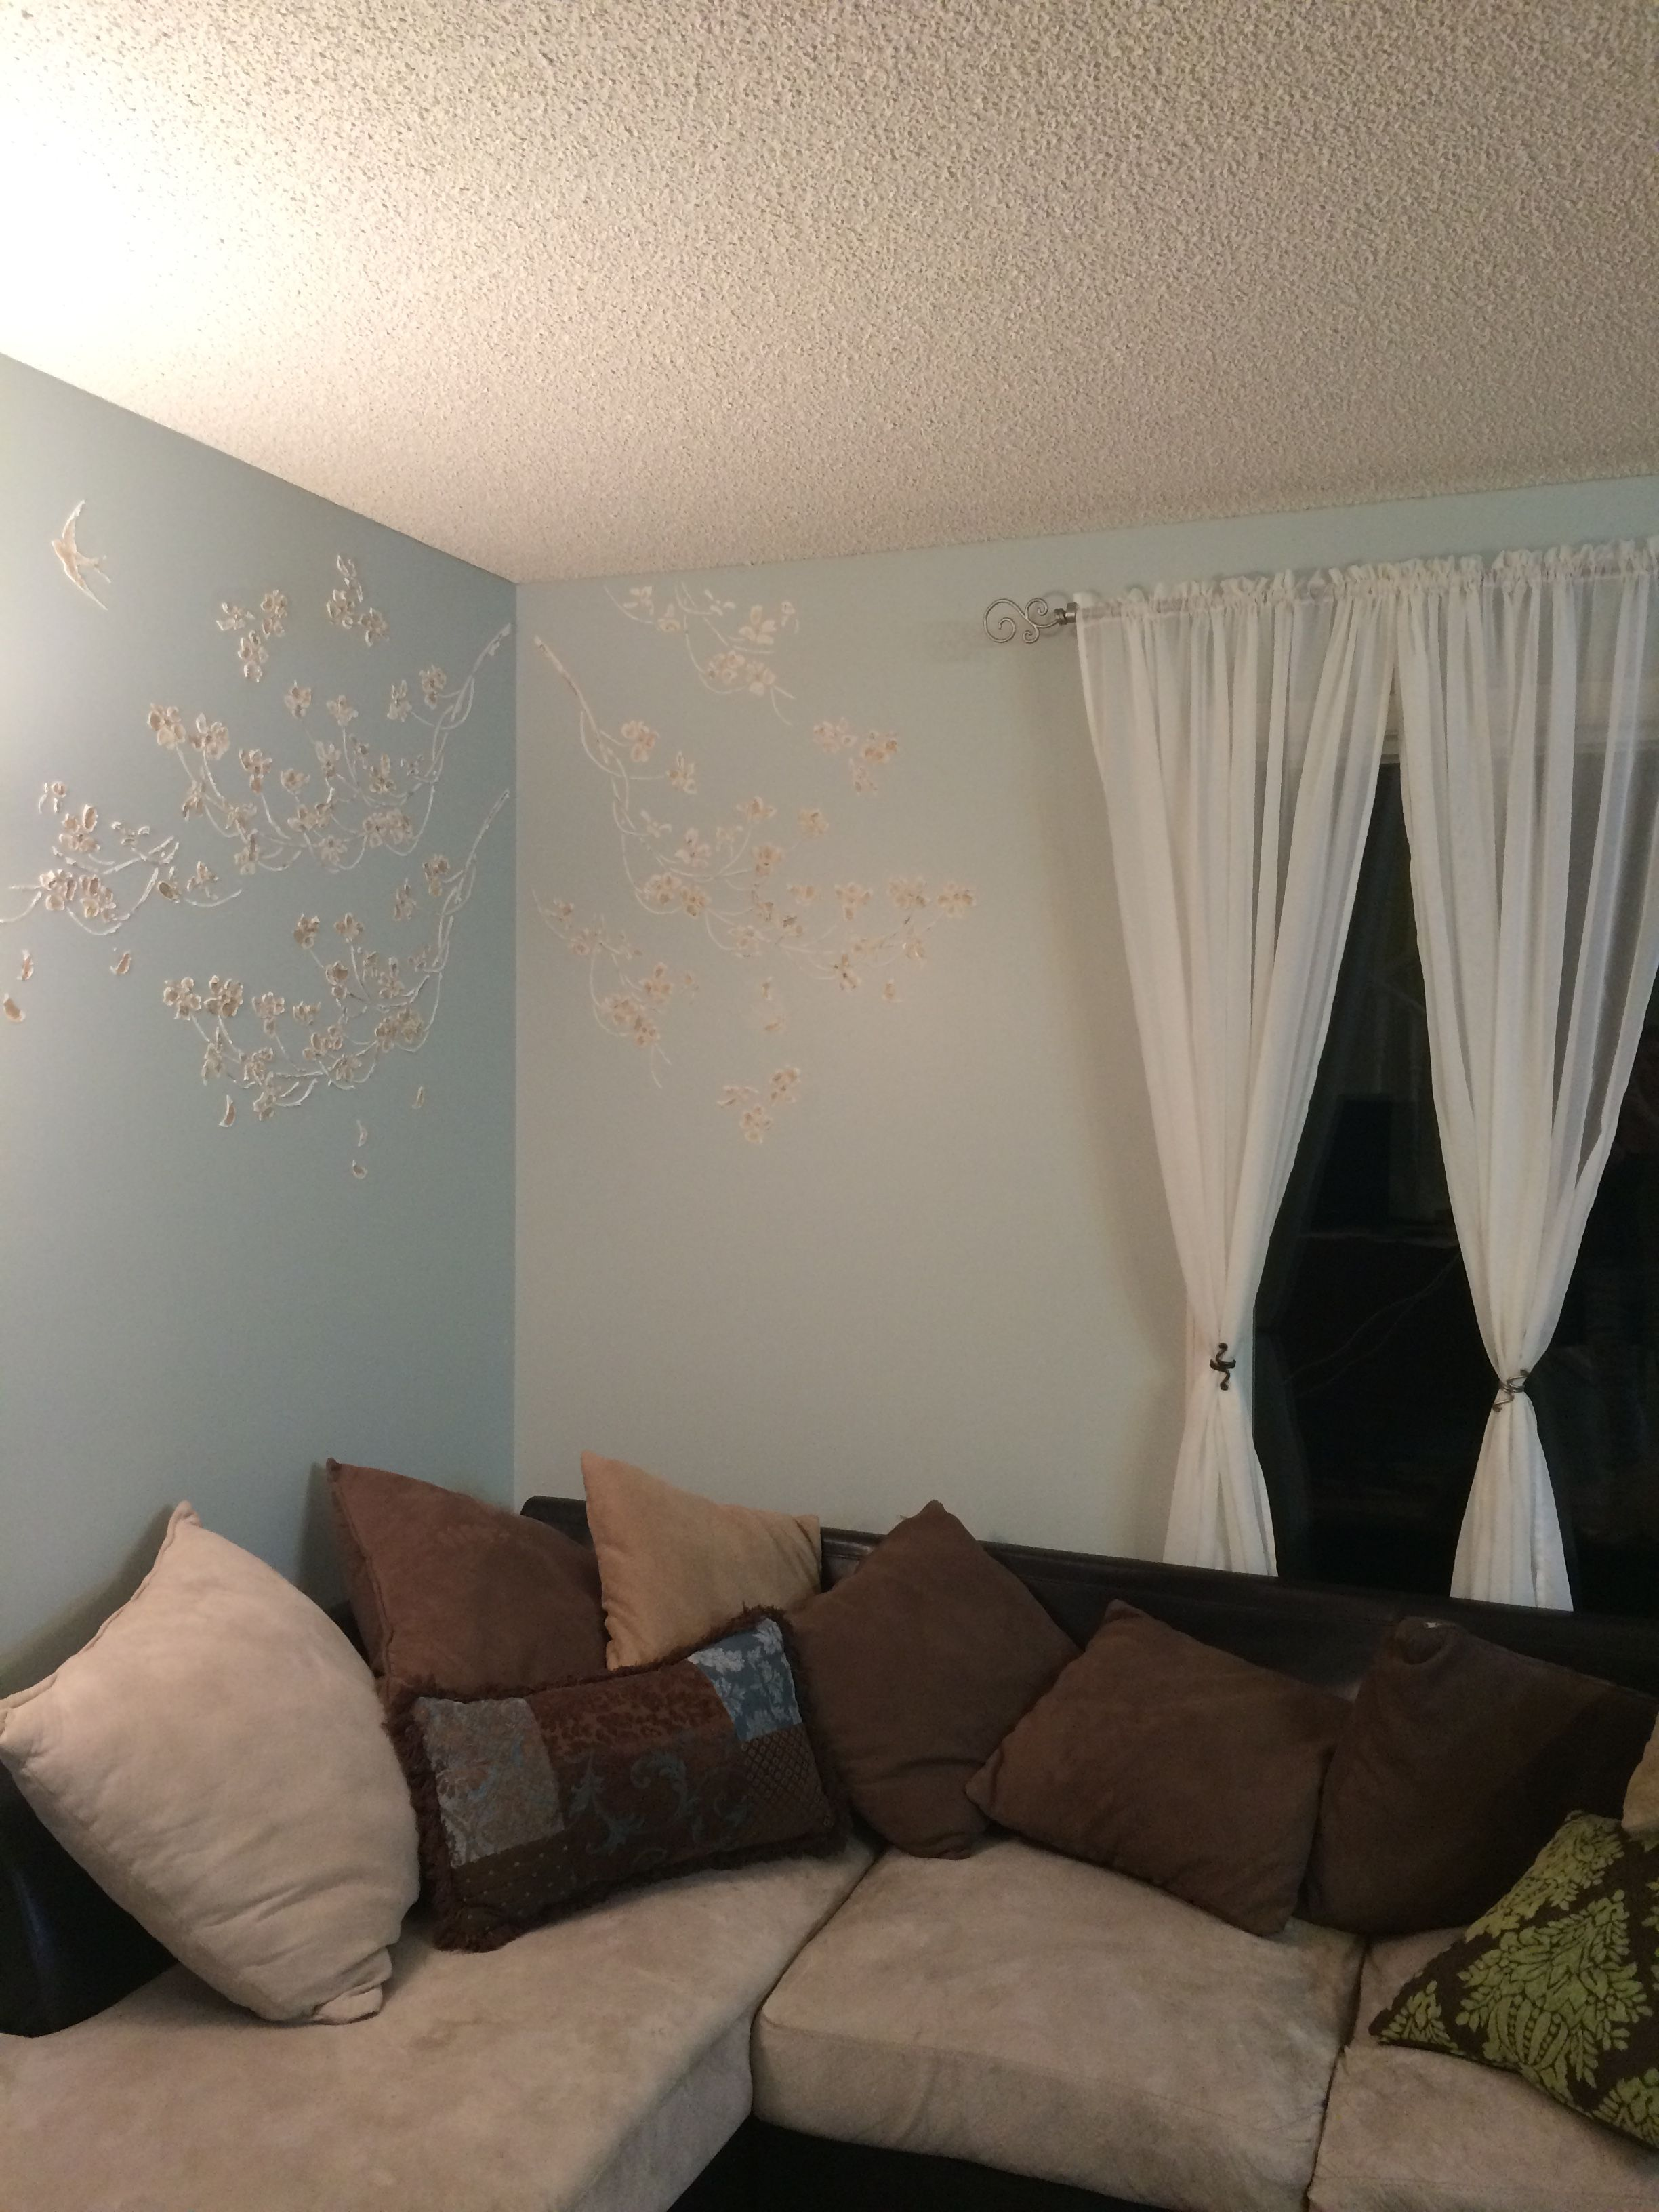 3D Plaster (Premixed Drywall Paste) Highlighted With Gold Shimmer Acrylic